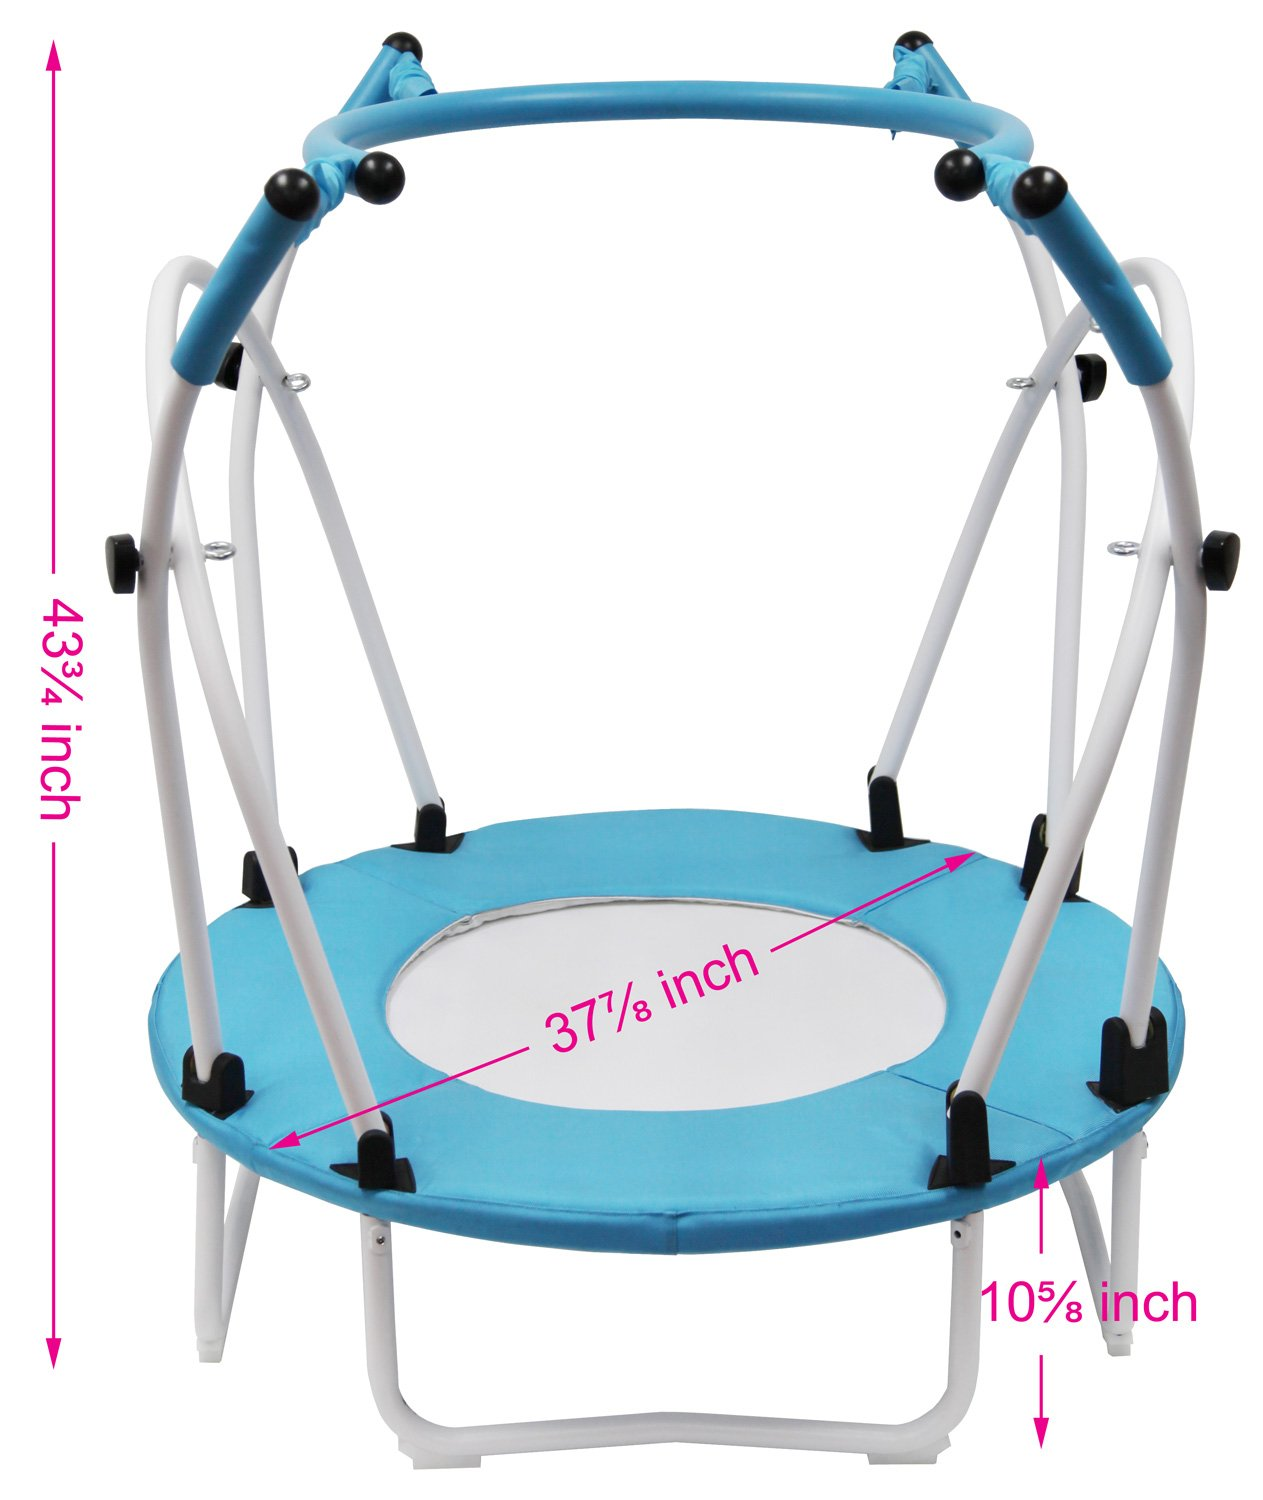 Mini Trampoline Rebounder with safety bar by Health Bounce